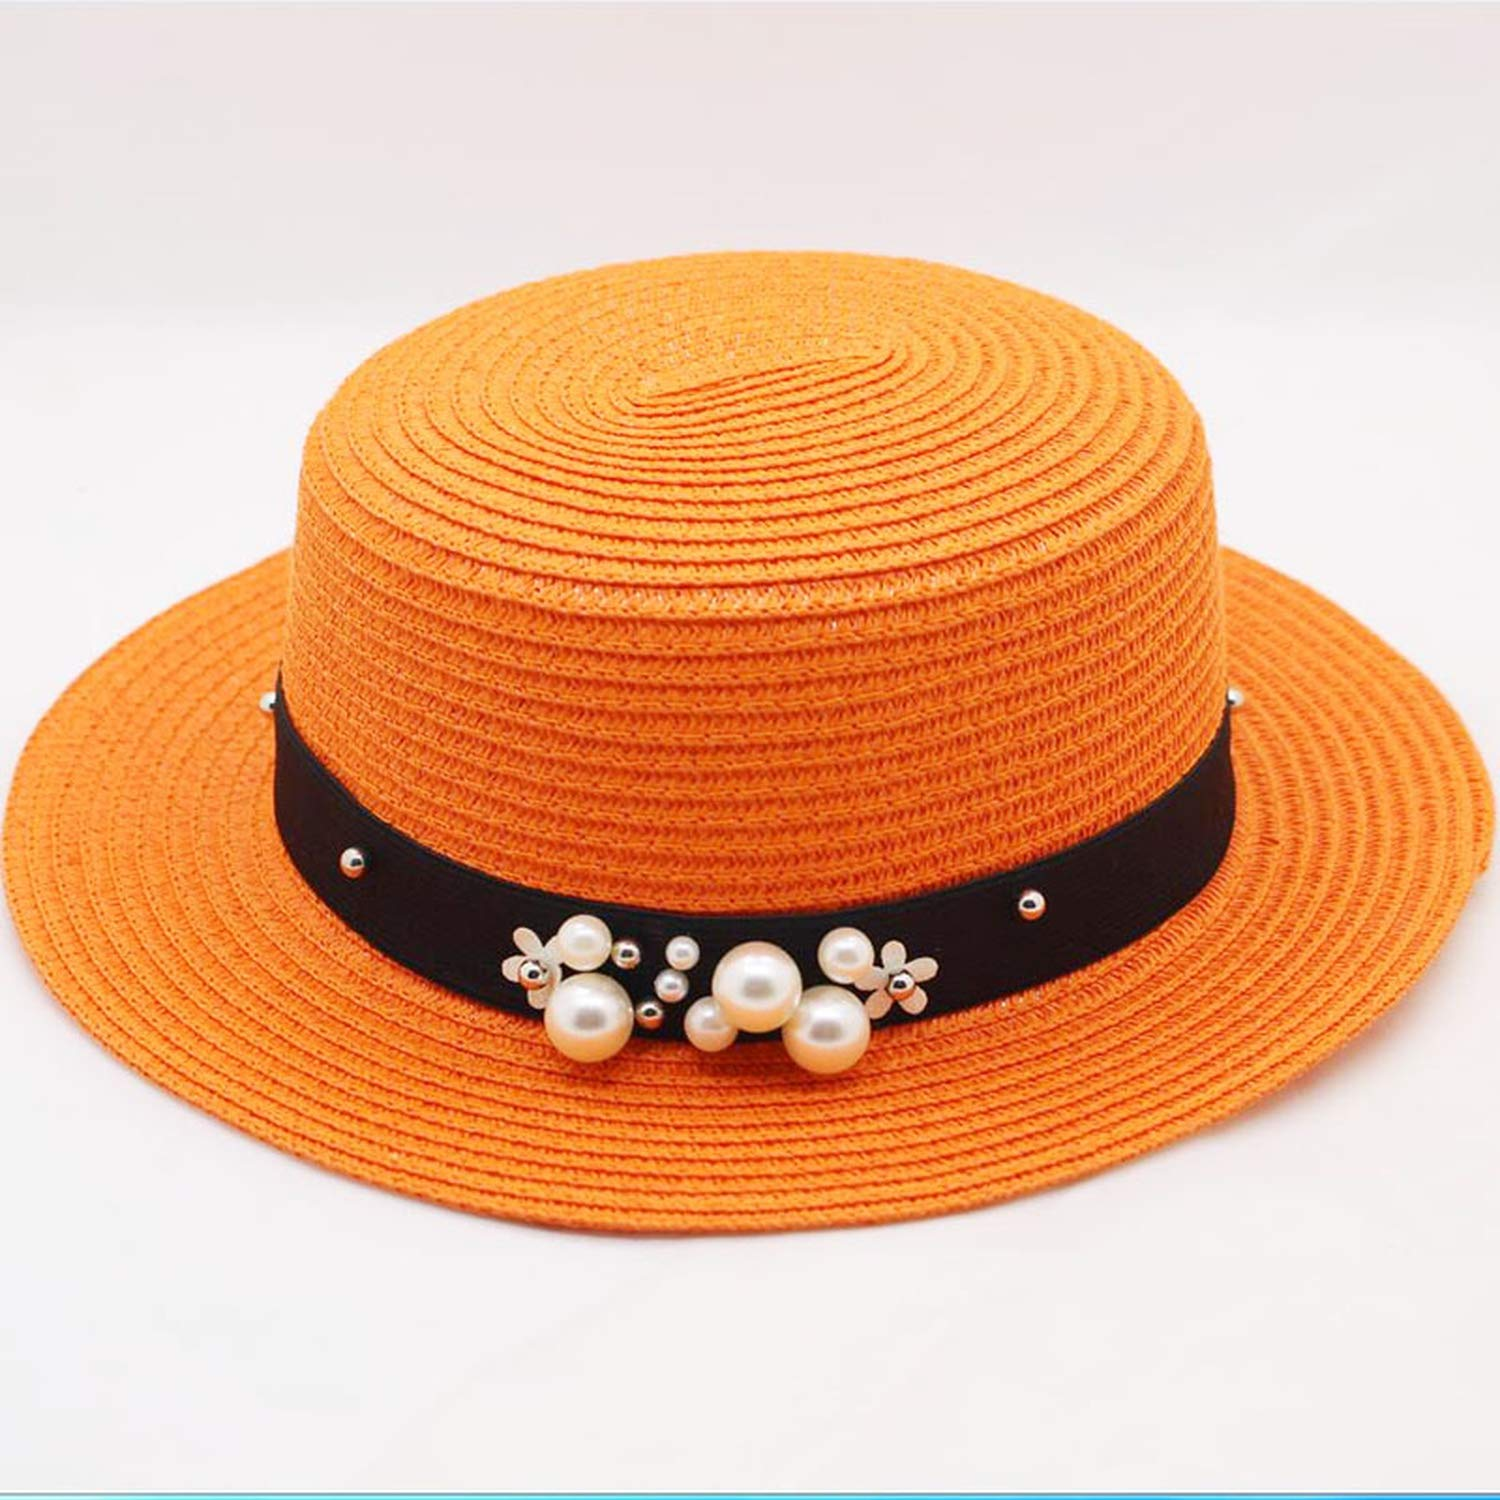 Summer Sun Hat Novelty 2019 for Women Caps Fashionable Straw Hat England Sea Beach Trip Caps